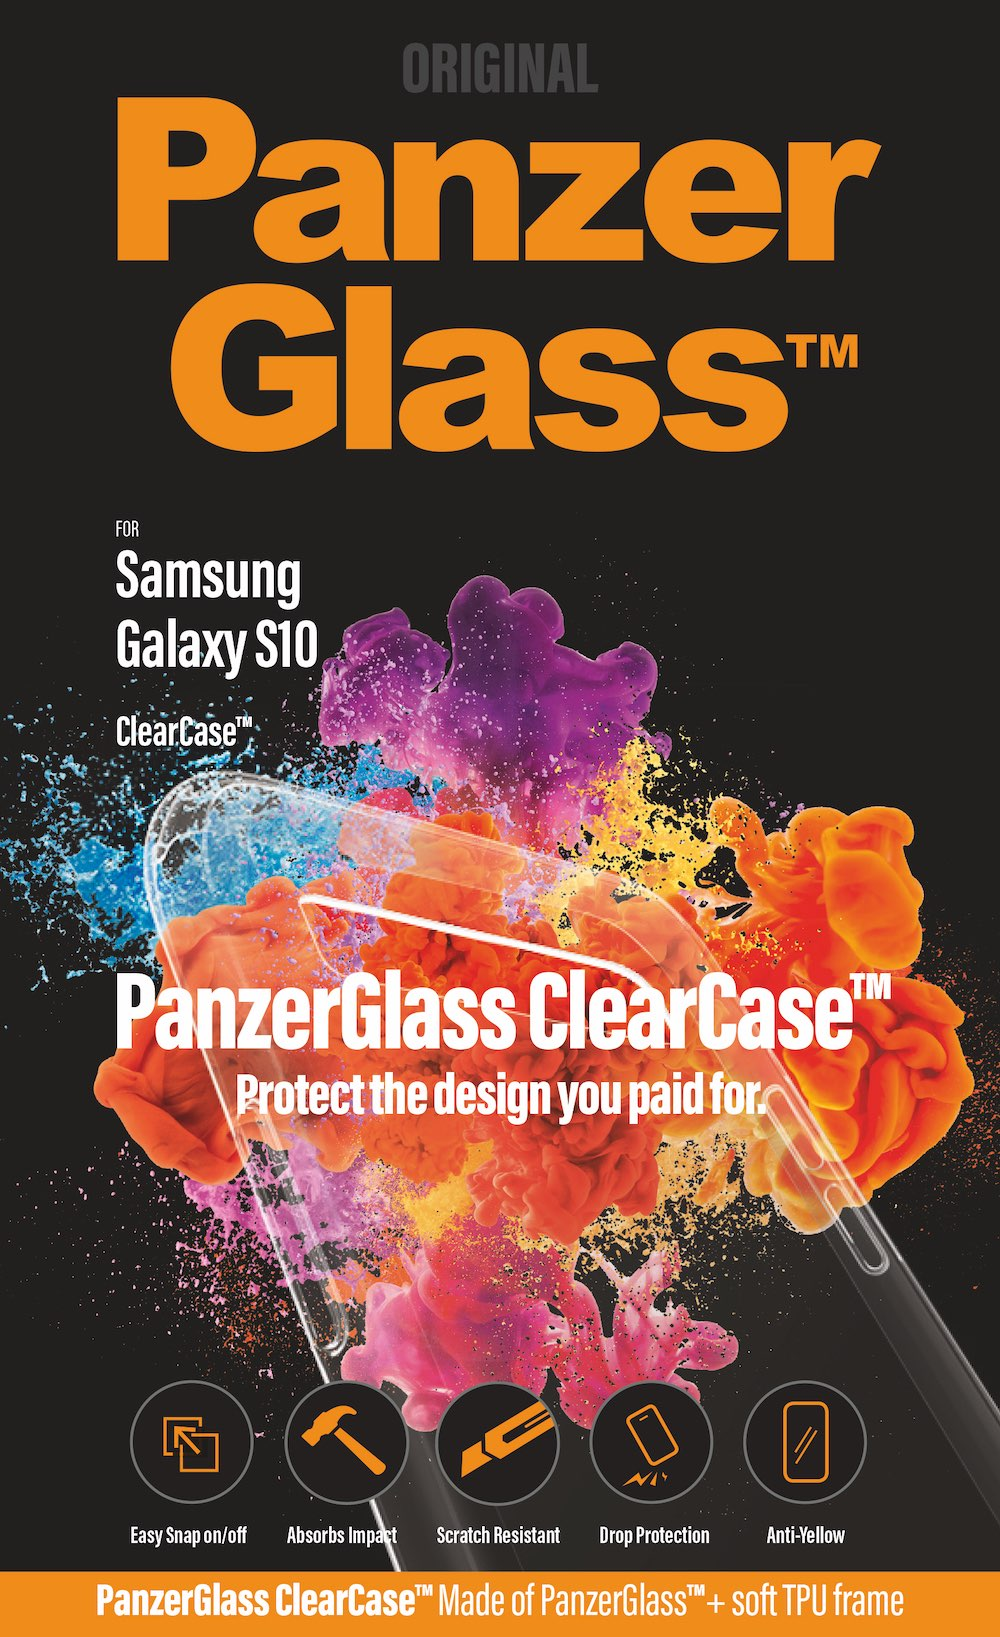 0195_ClearCase_Samsung_Galaxy_S10_ART02.indd